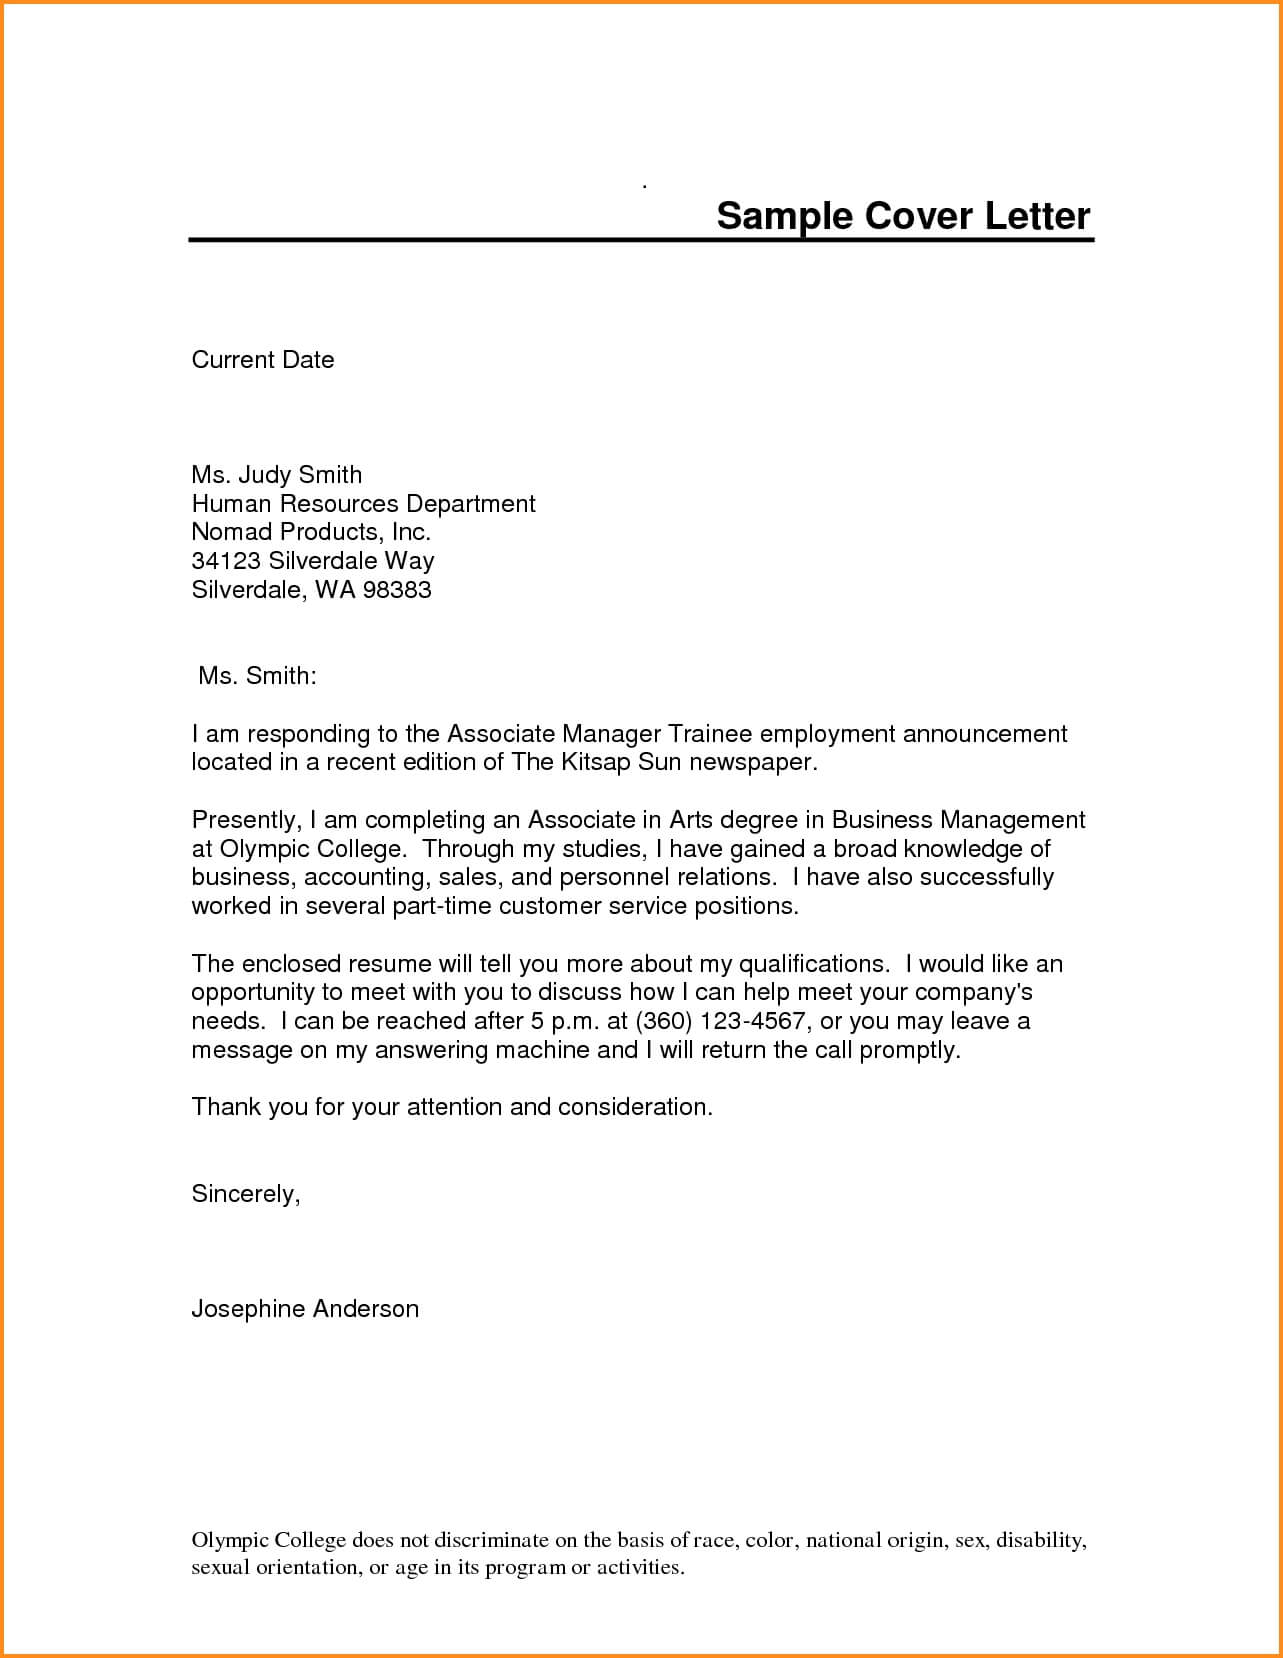 021 Template Ideas Letter Of Interest Microsoft Word Free With Letter Of Interest Template Microsoft Word